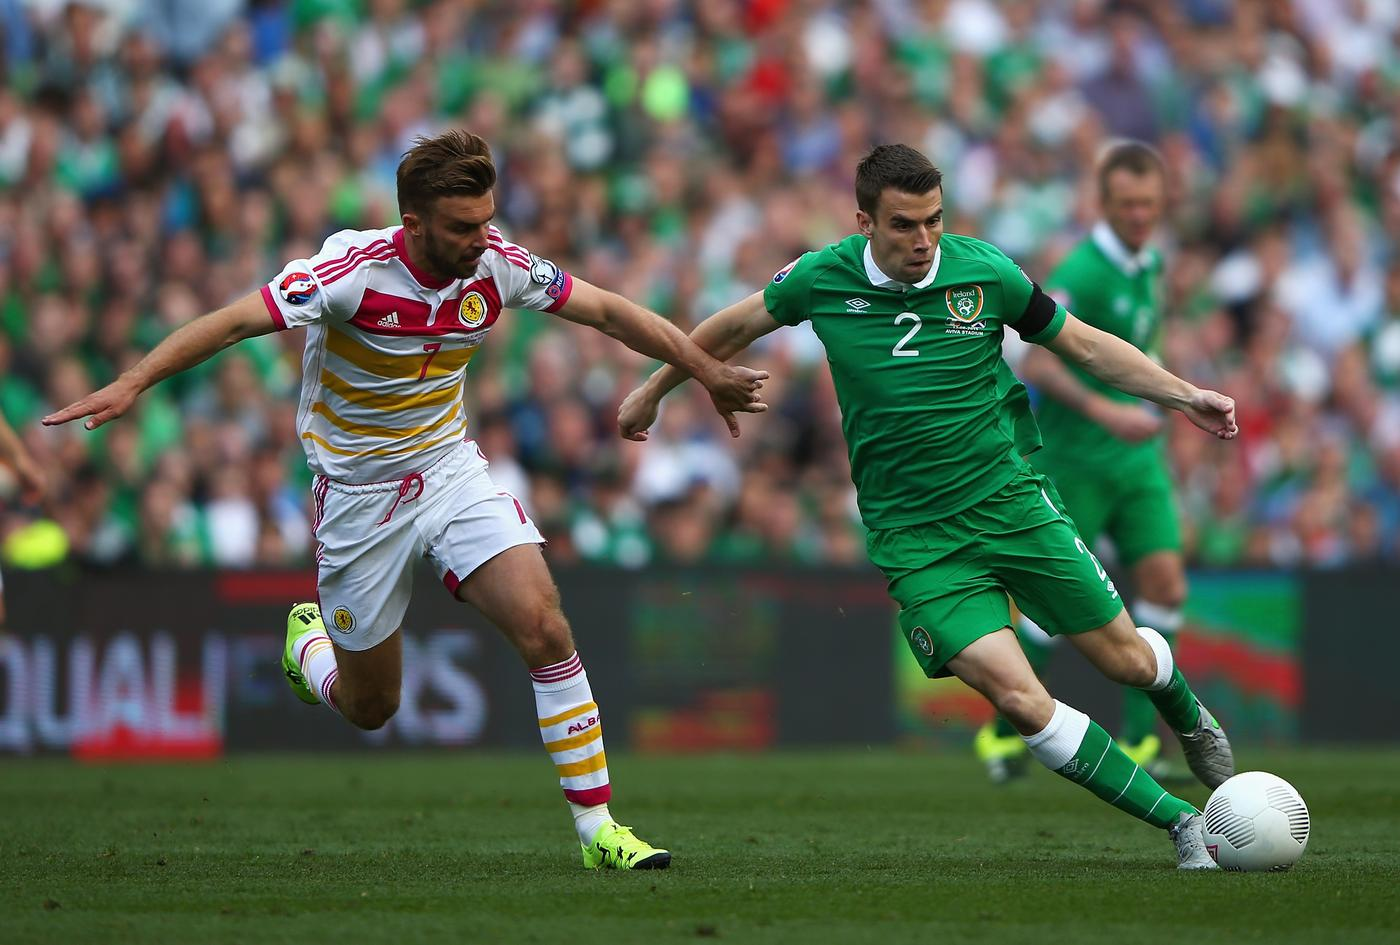 Is Everton's Seamus Coleman a Manchester United transfer target this summer?